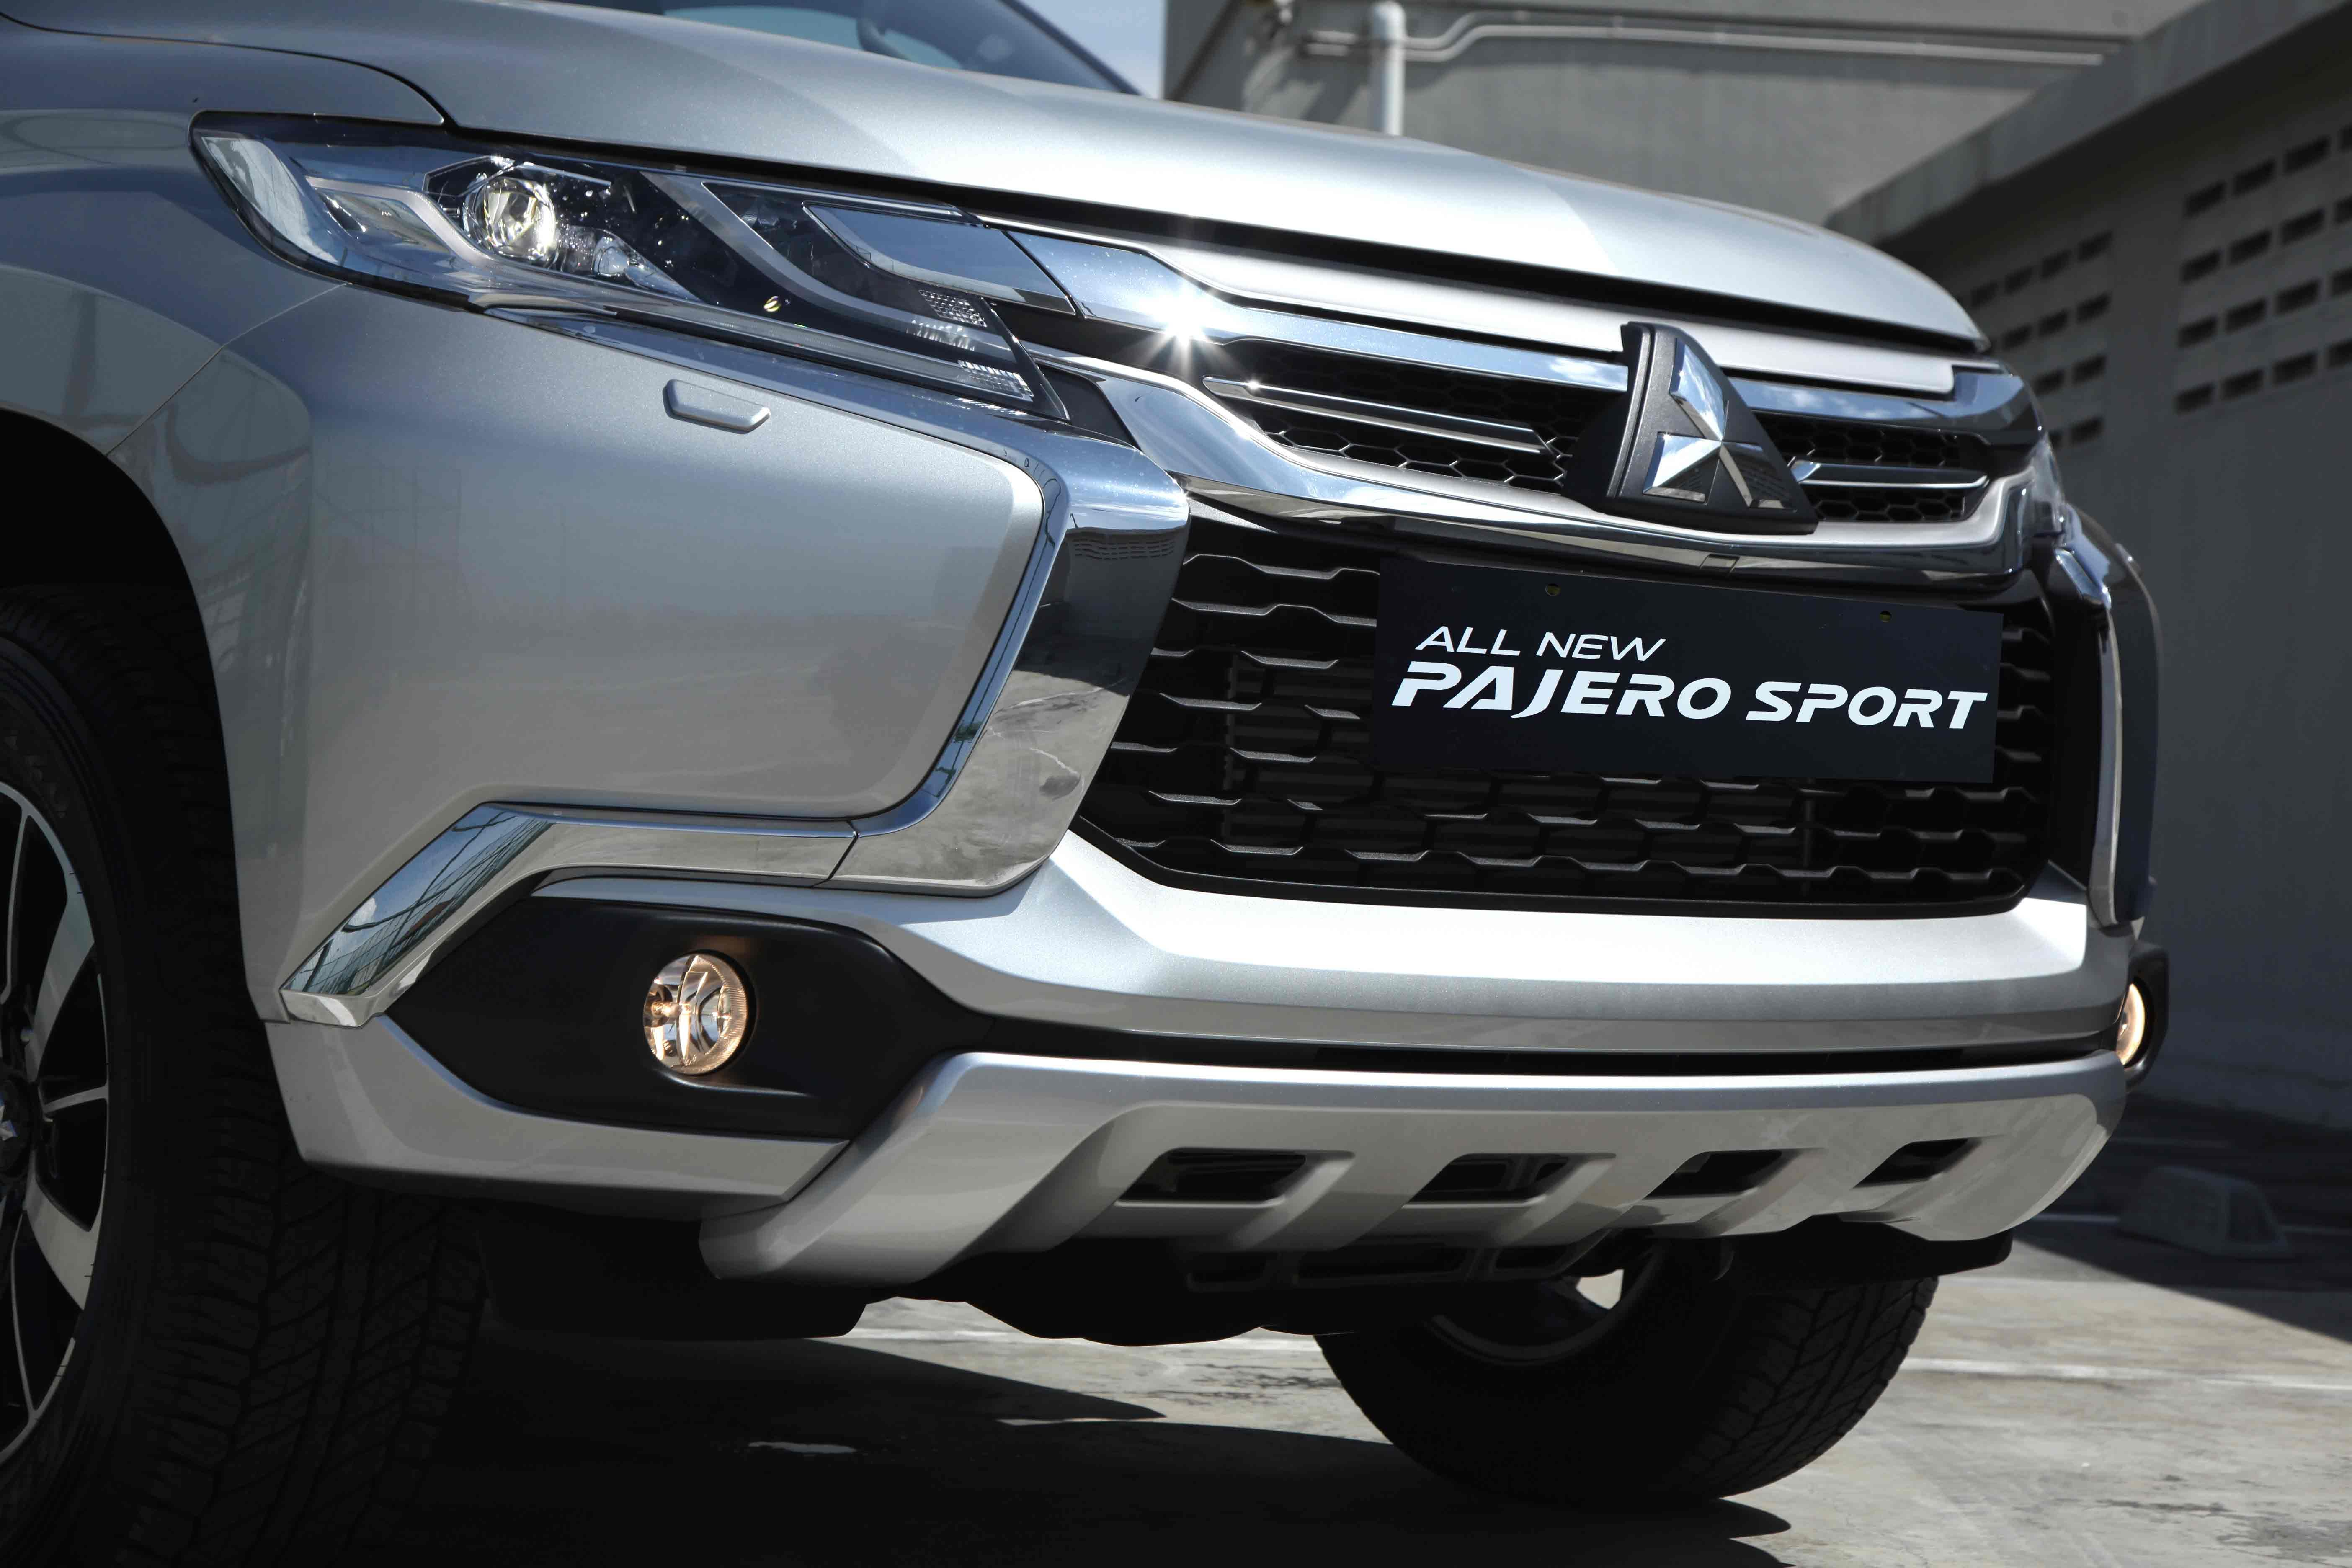 Body kits pajero 2016 body kits skirt full 3d design system with high quality standards quality of workpiece perfect precise scale all of this